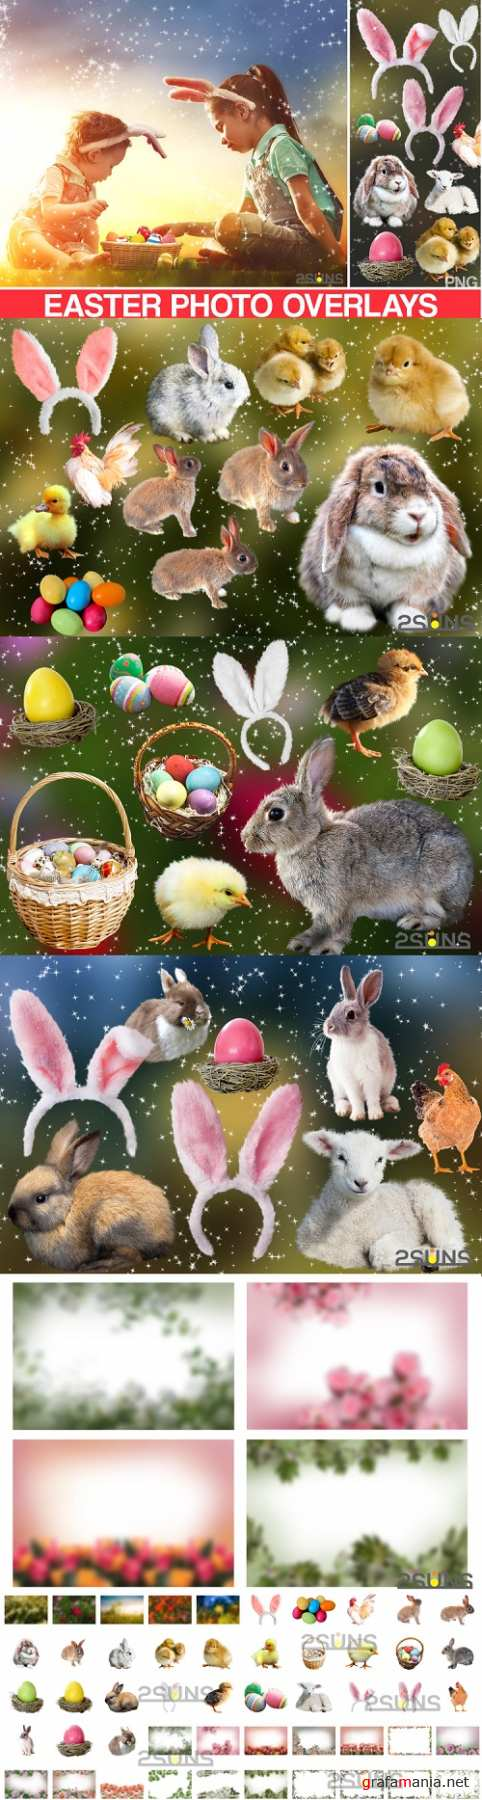 50 Easter photo overlays, spring photo overlay clipart png - 508346